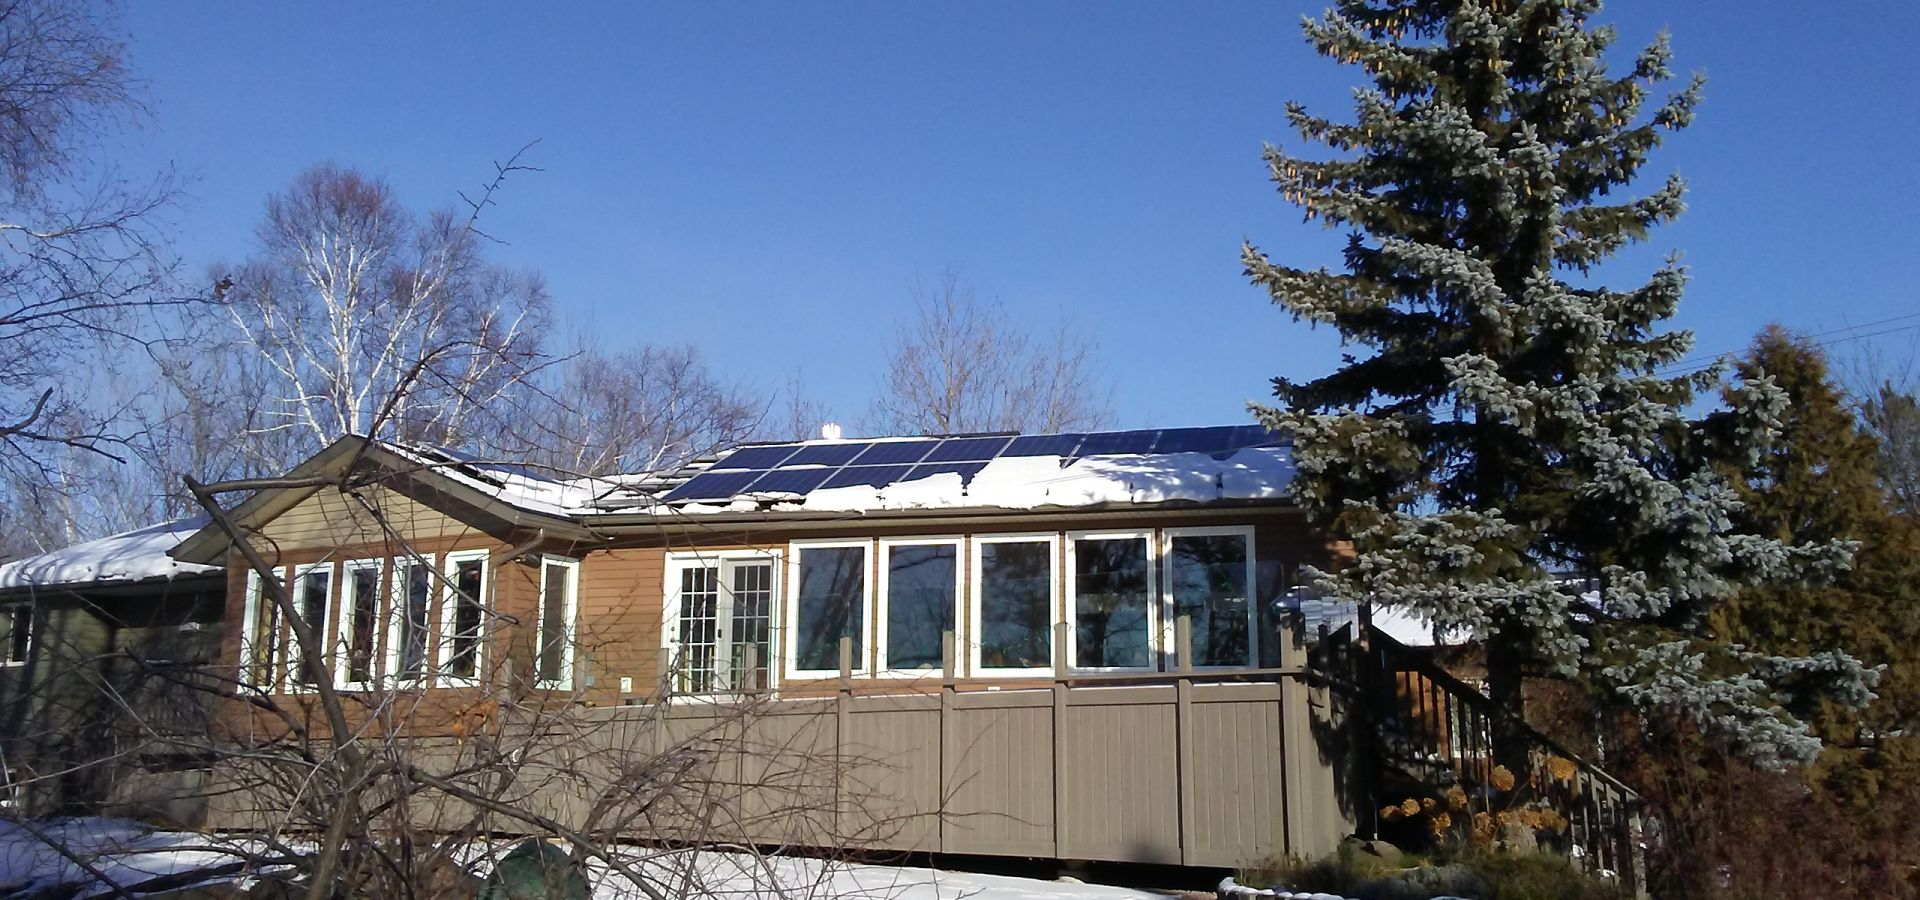 solar panels on a roof in ontario in the snow